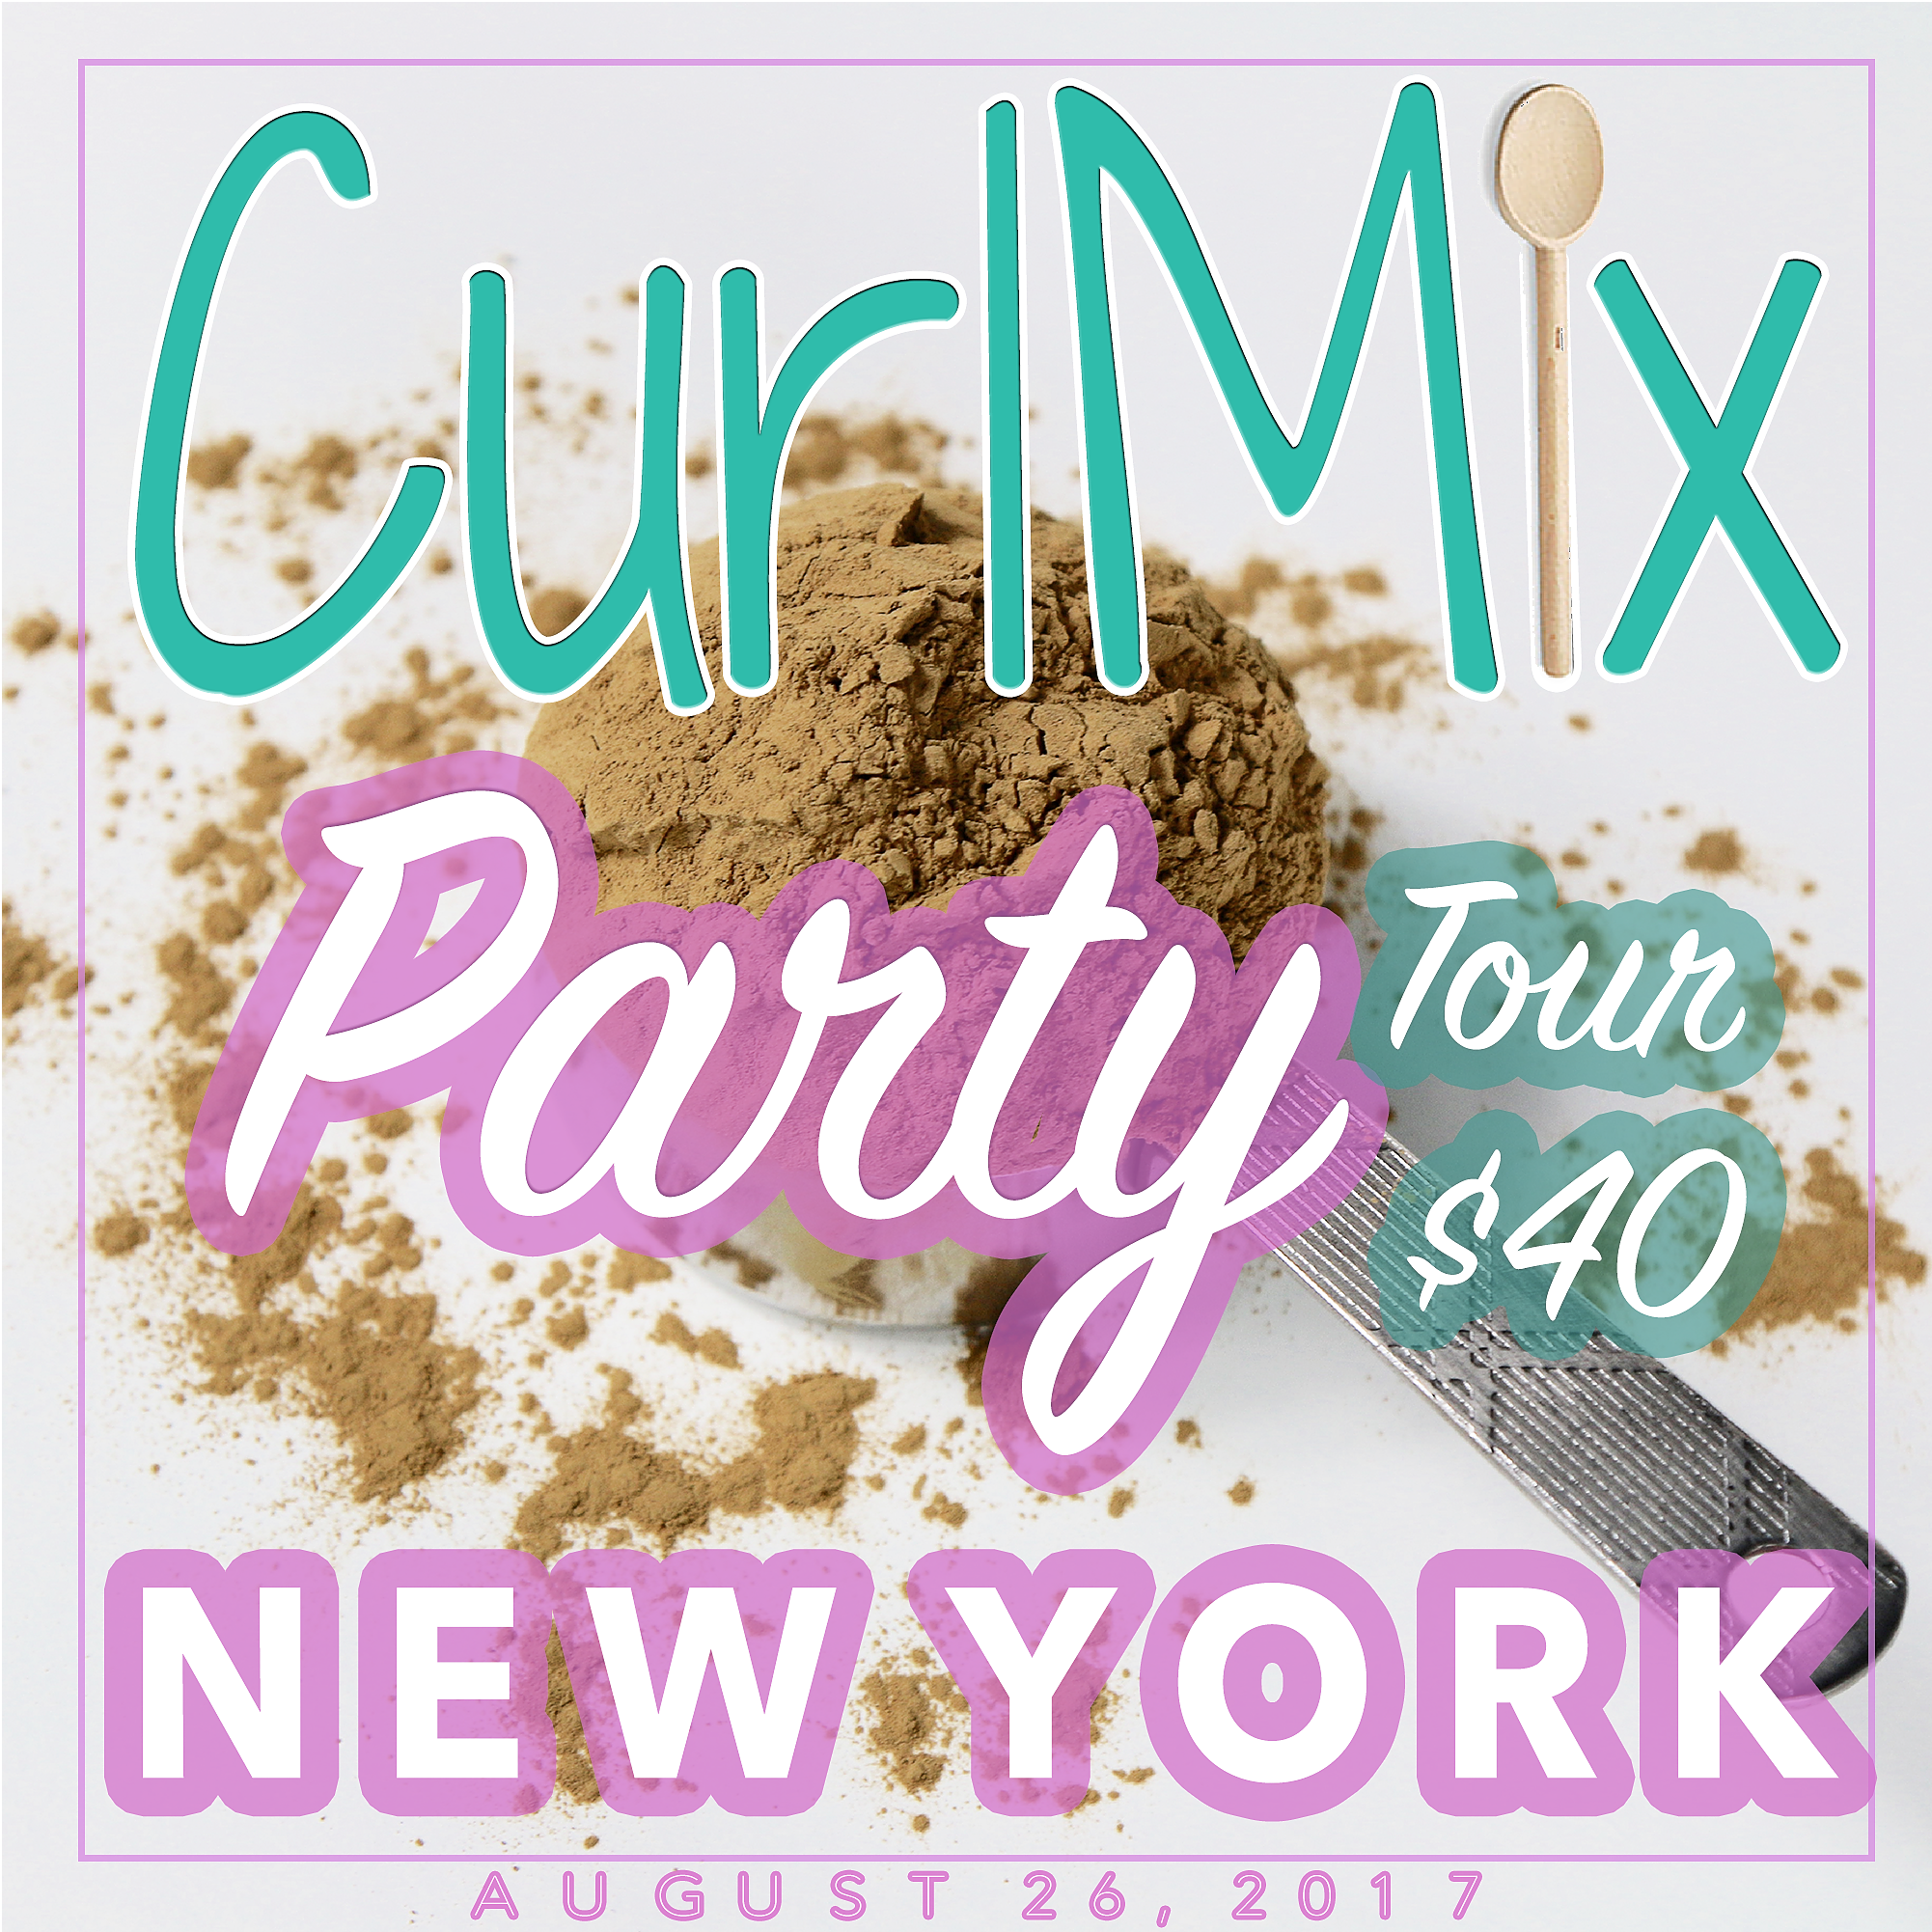 CurlMix Party Tour - New York - Saturday, August 26, 2017